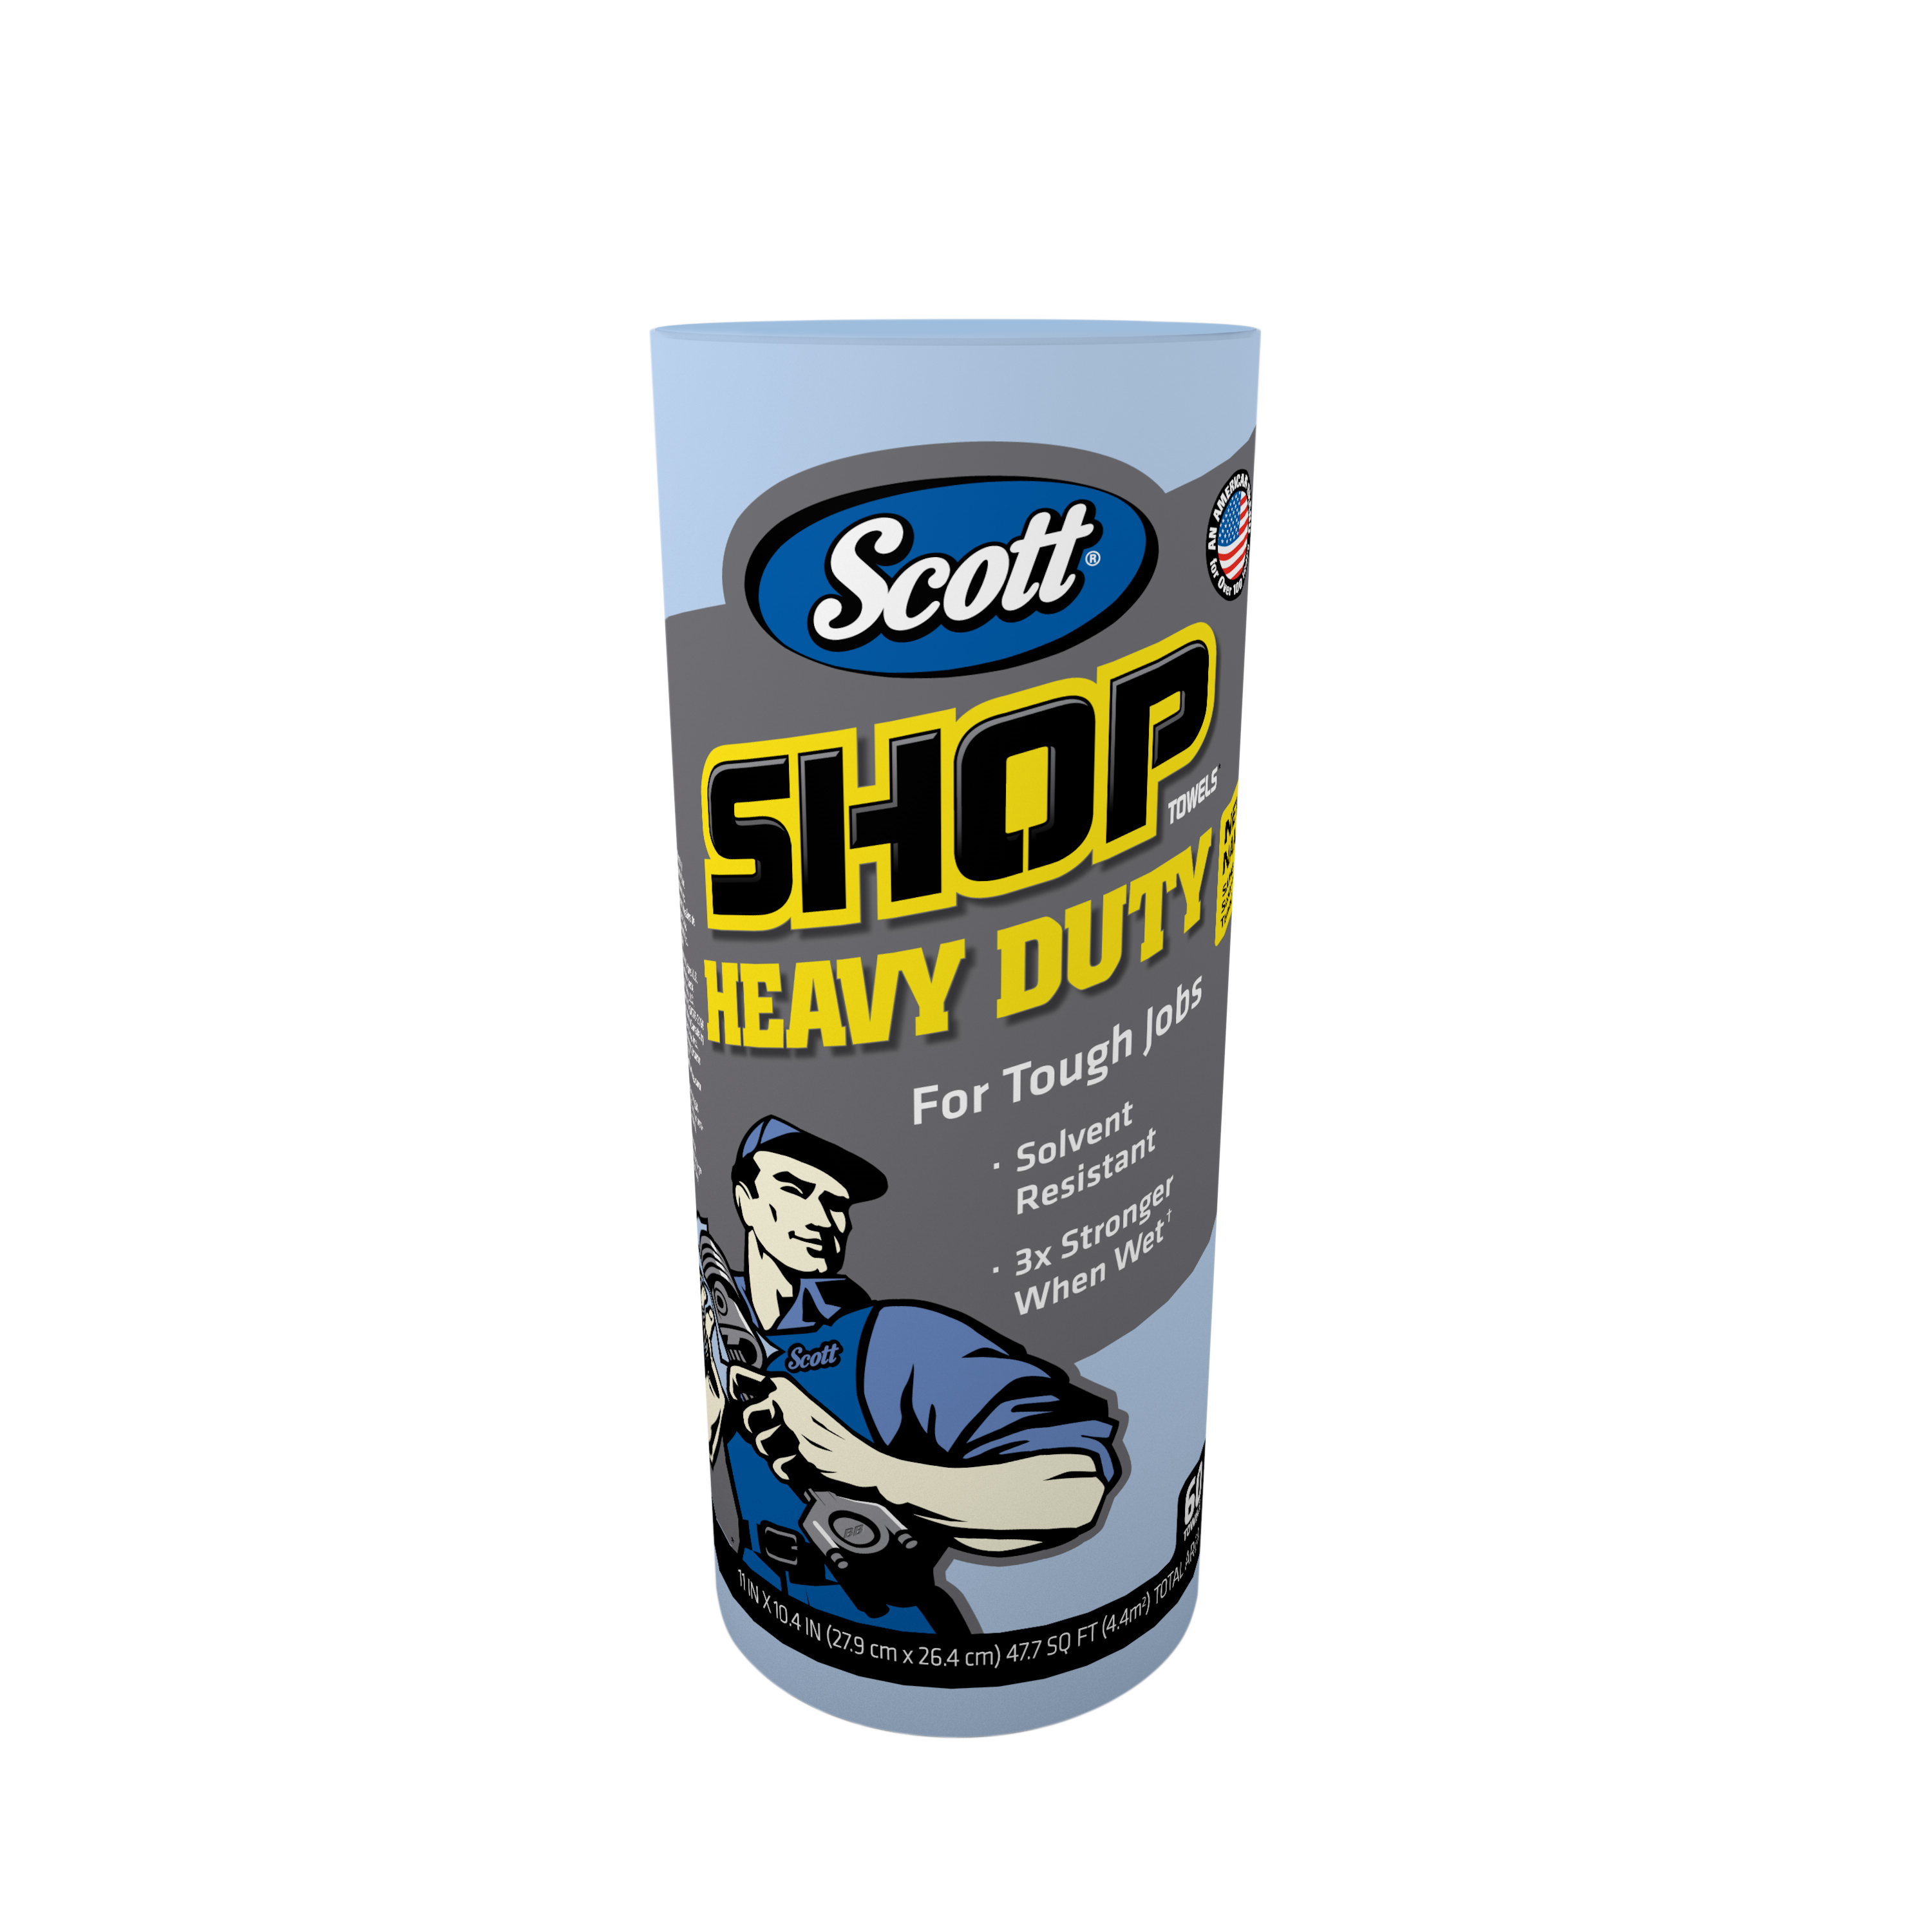 Scott Heavy Duty Towel